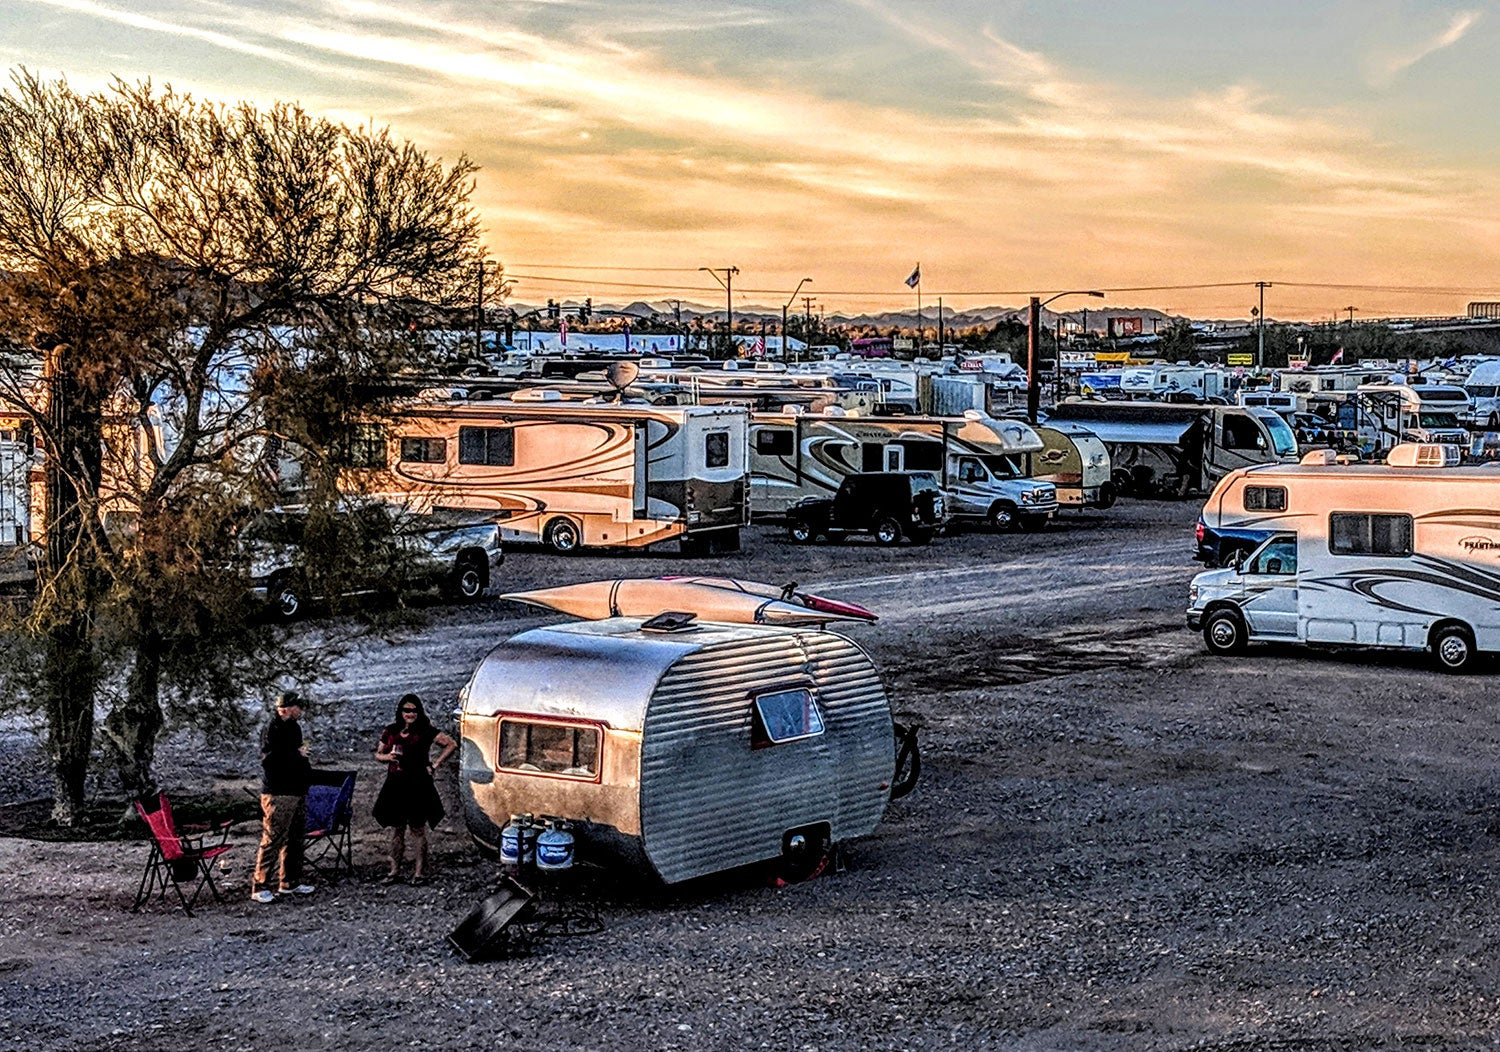 a sunset overlooking a field of RV trailers and vans at the Quartzsite, AZ RV festival in 2019